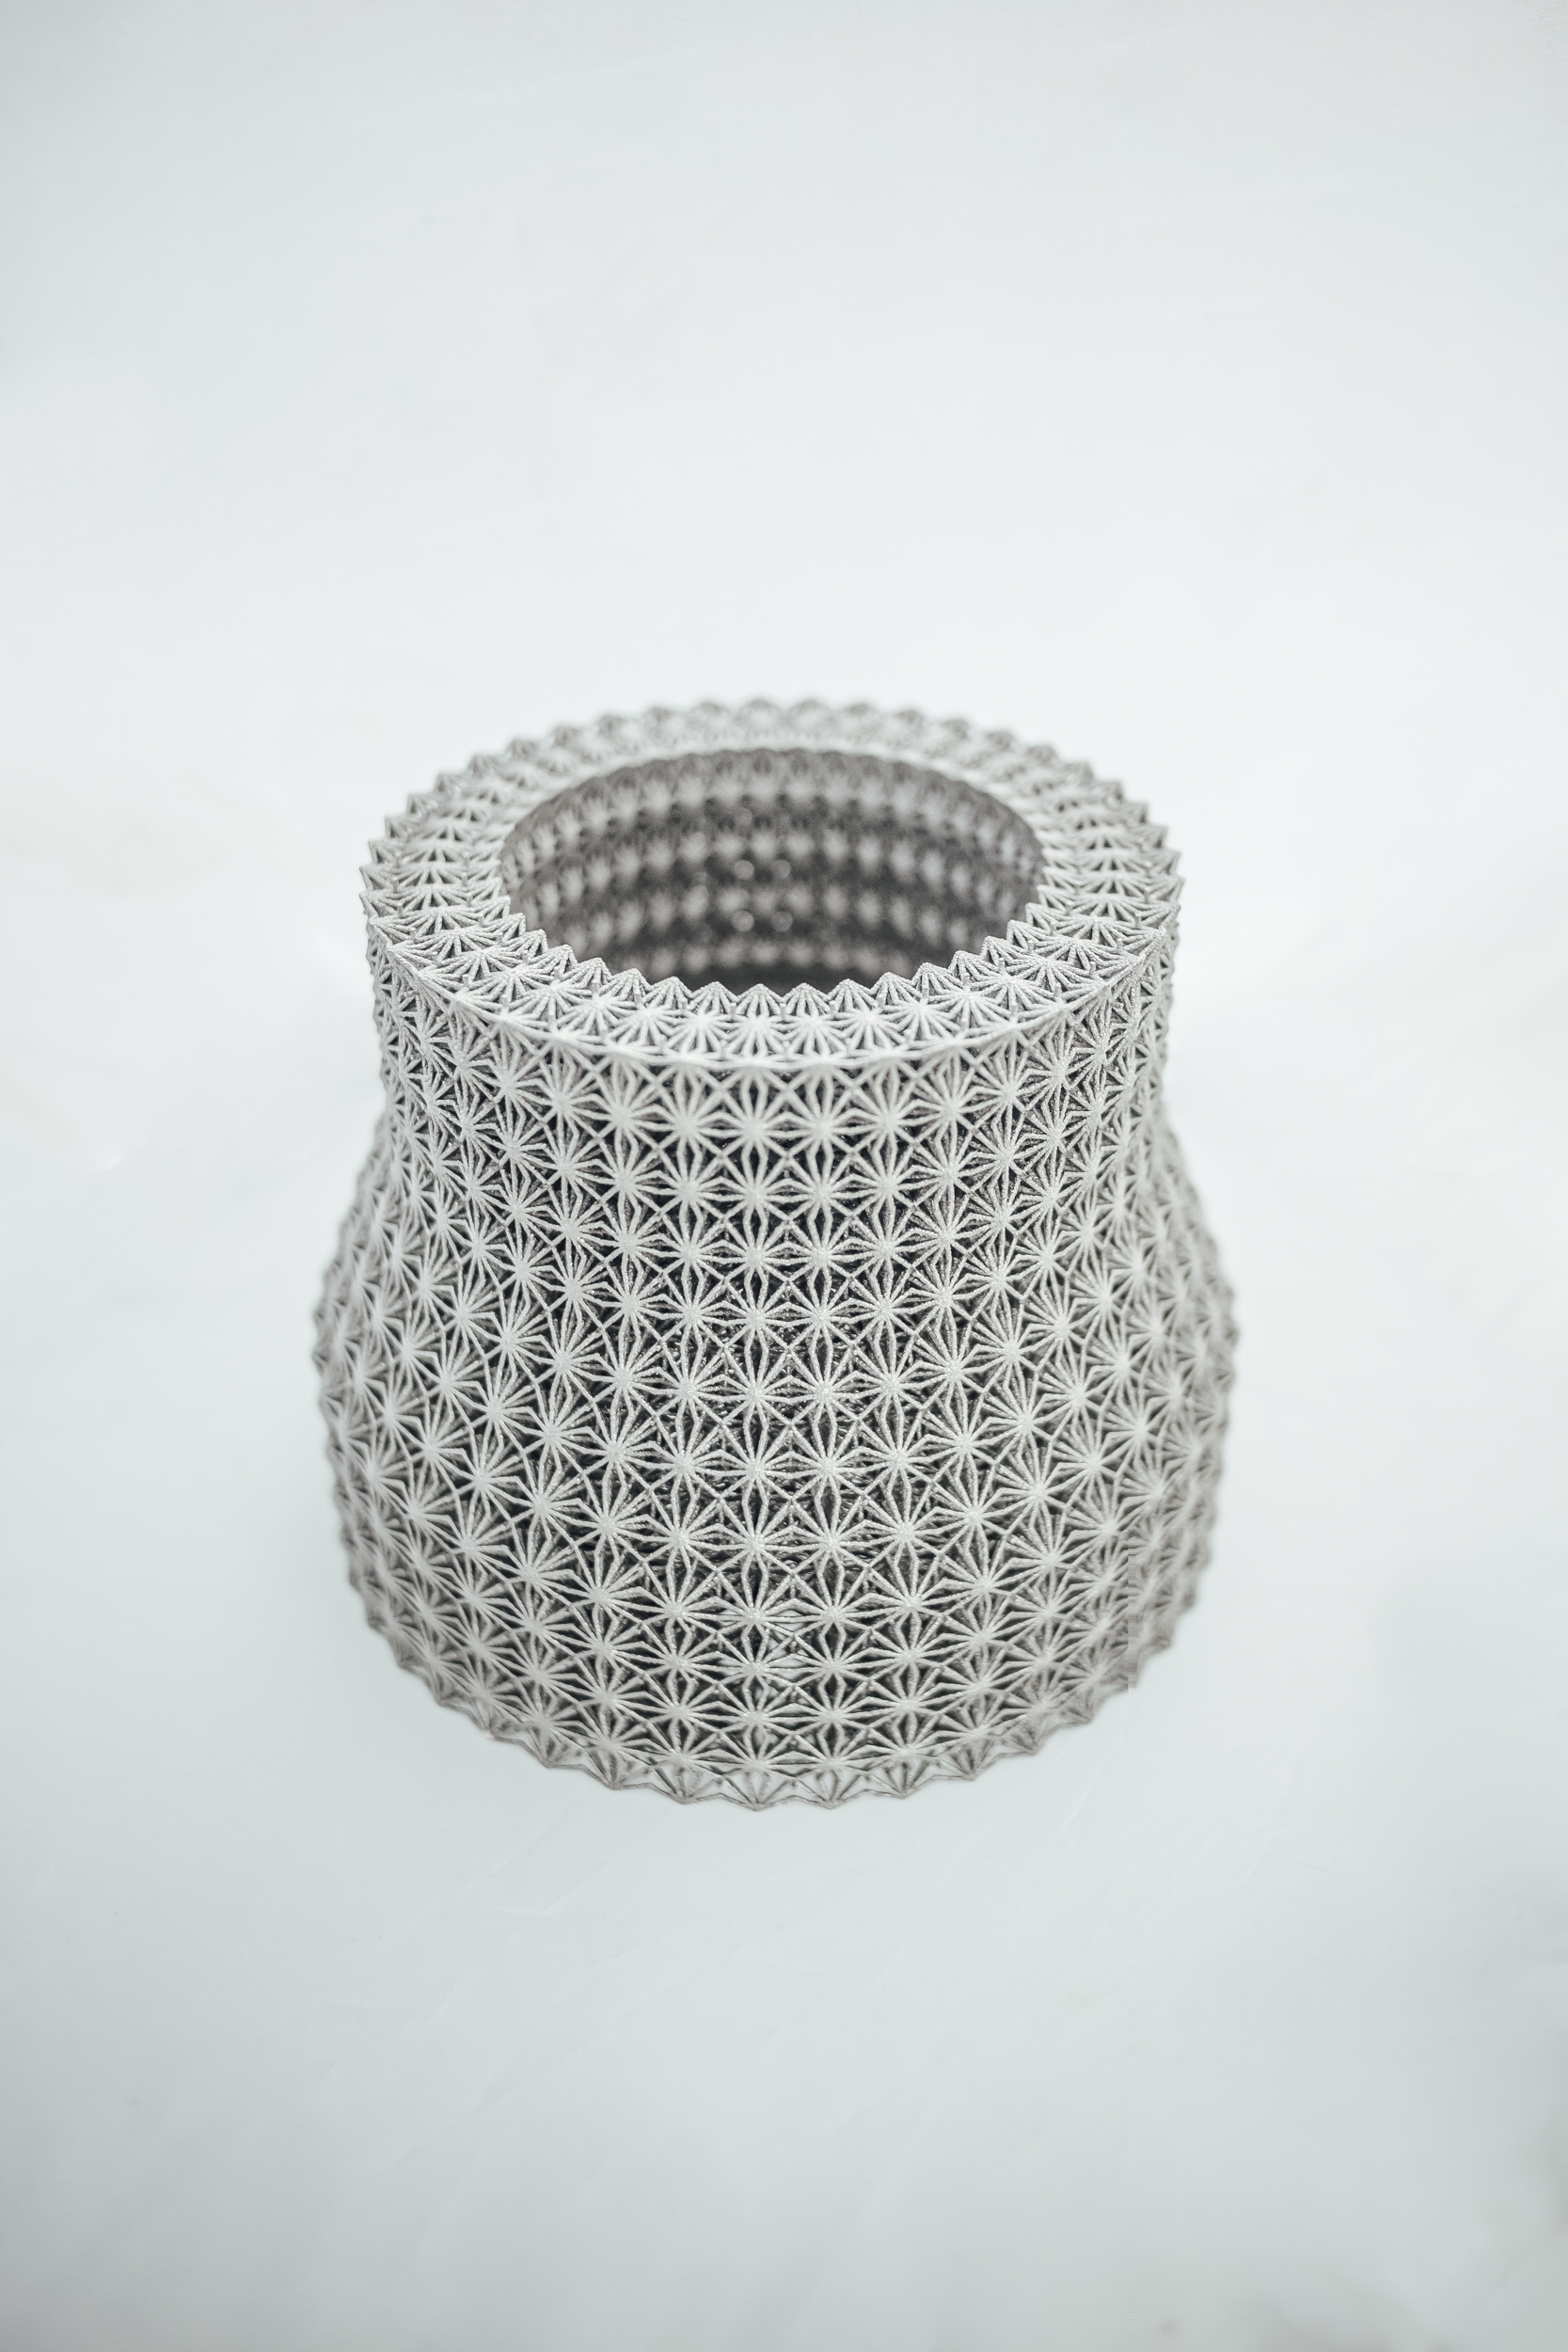 Artifact: Lattice structure (cover image)